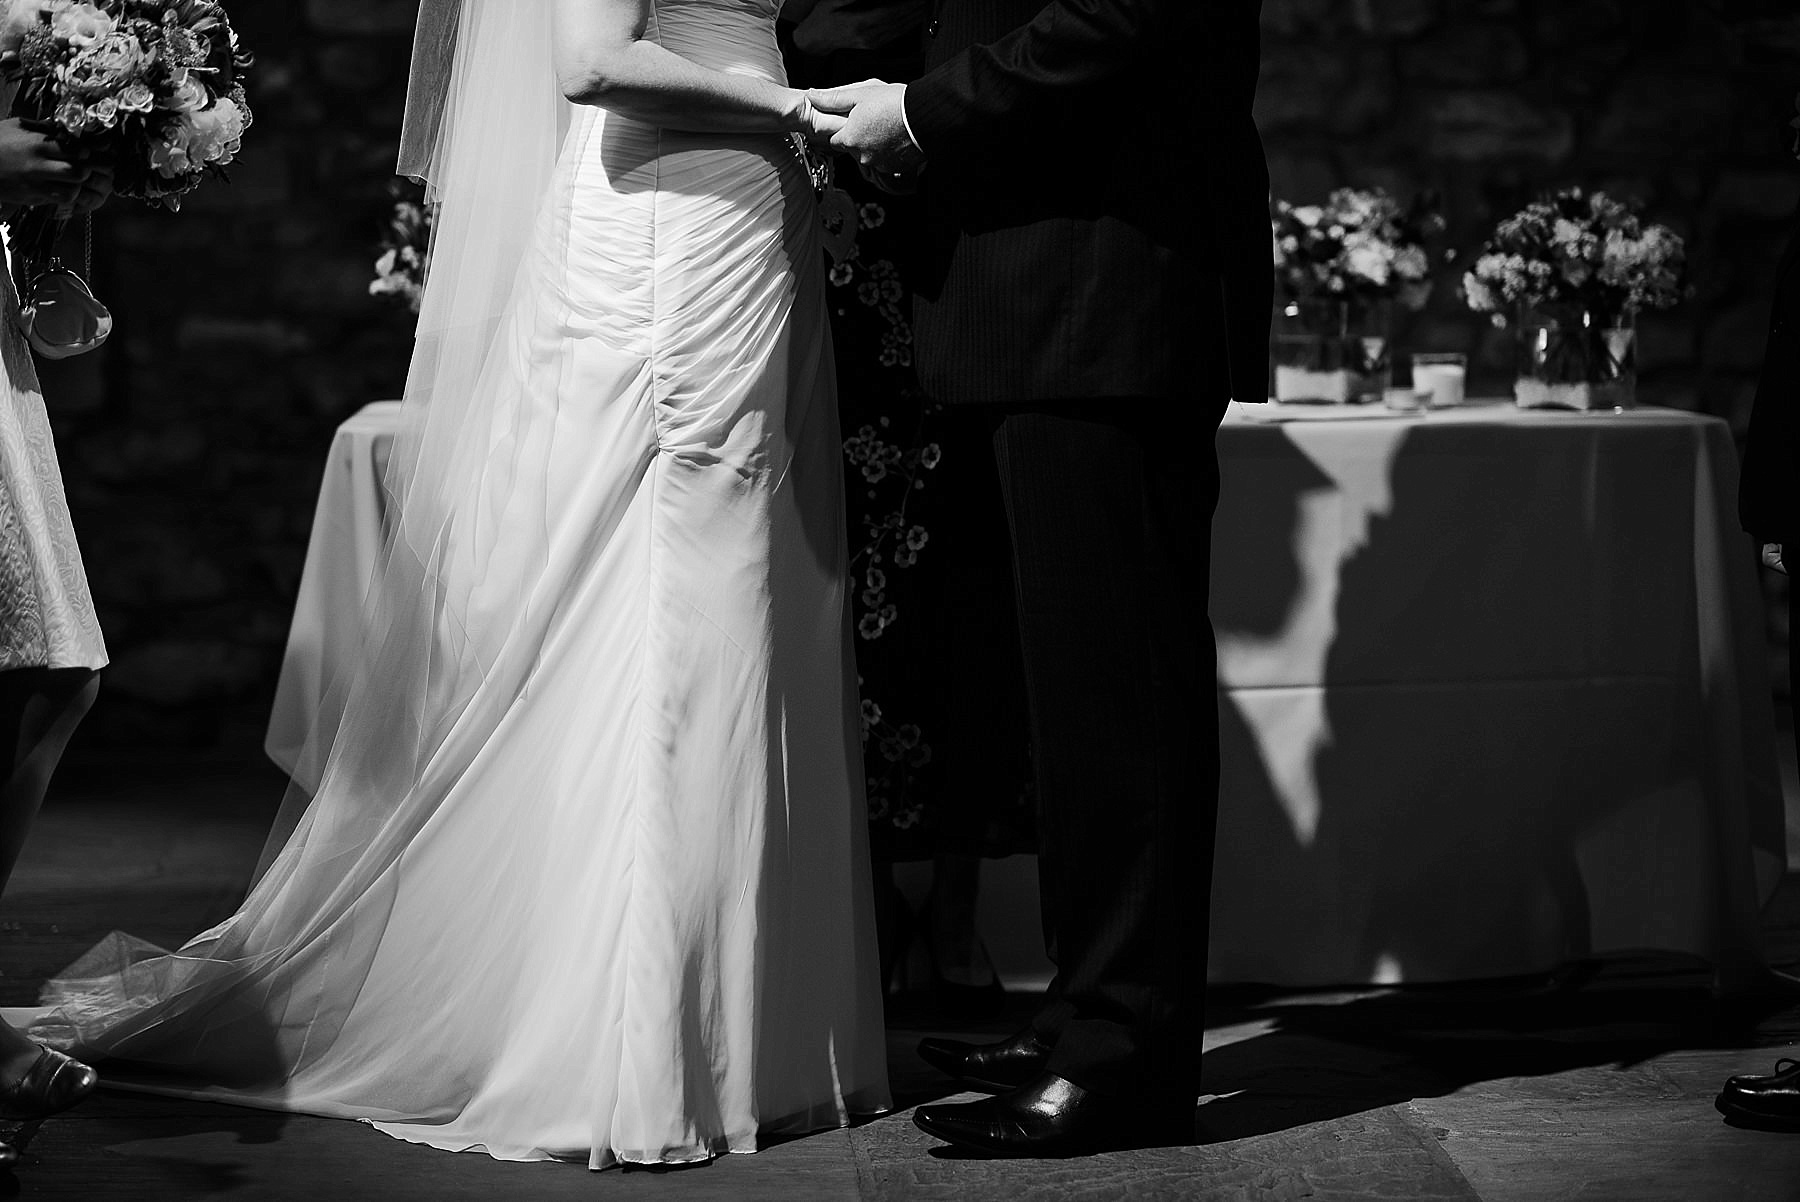 holding hands in the ceremony